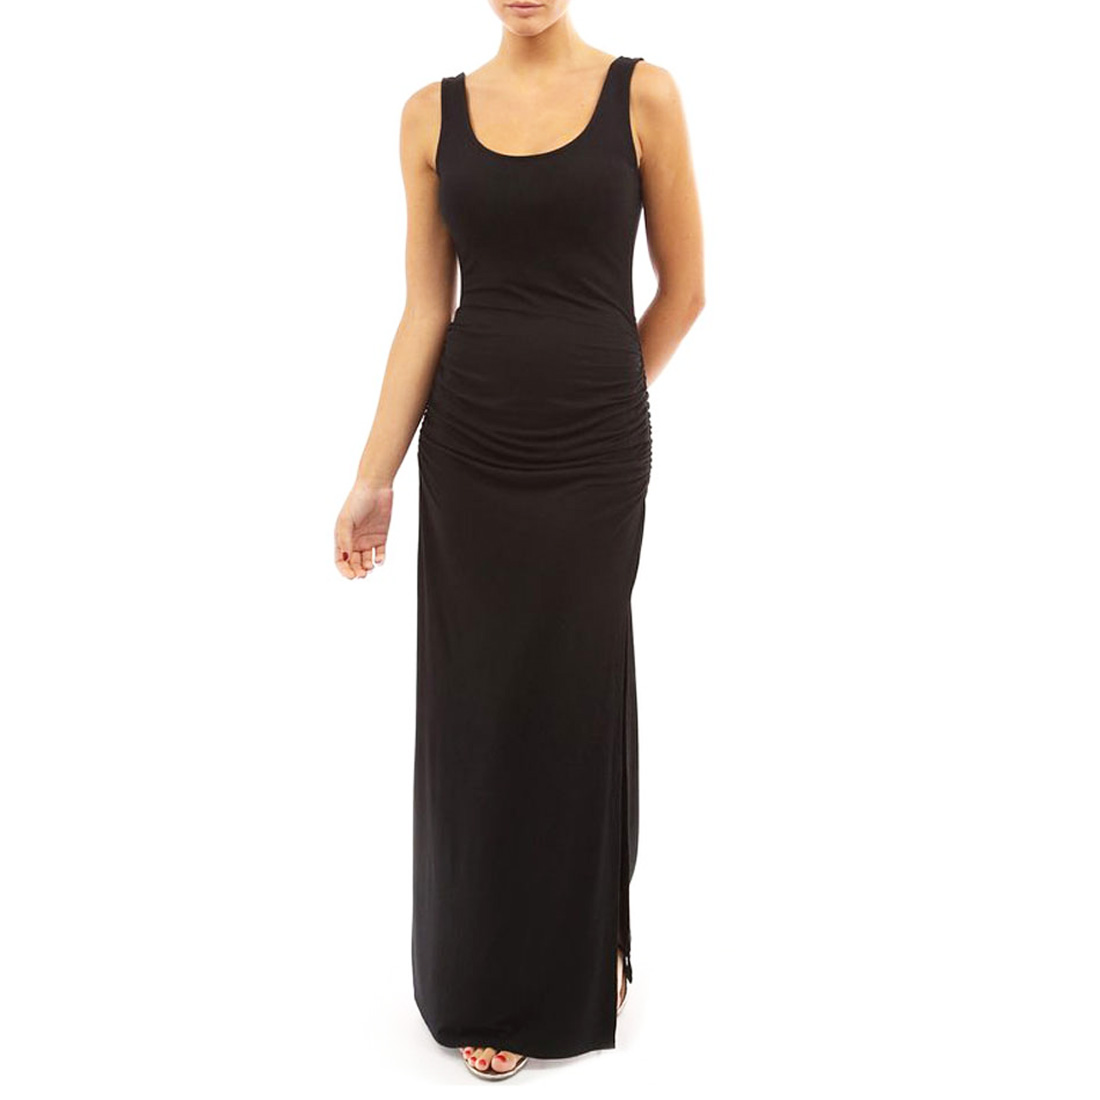 Womens Sleeveless Summer Maxi Dress Evening Cocktail Long ...